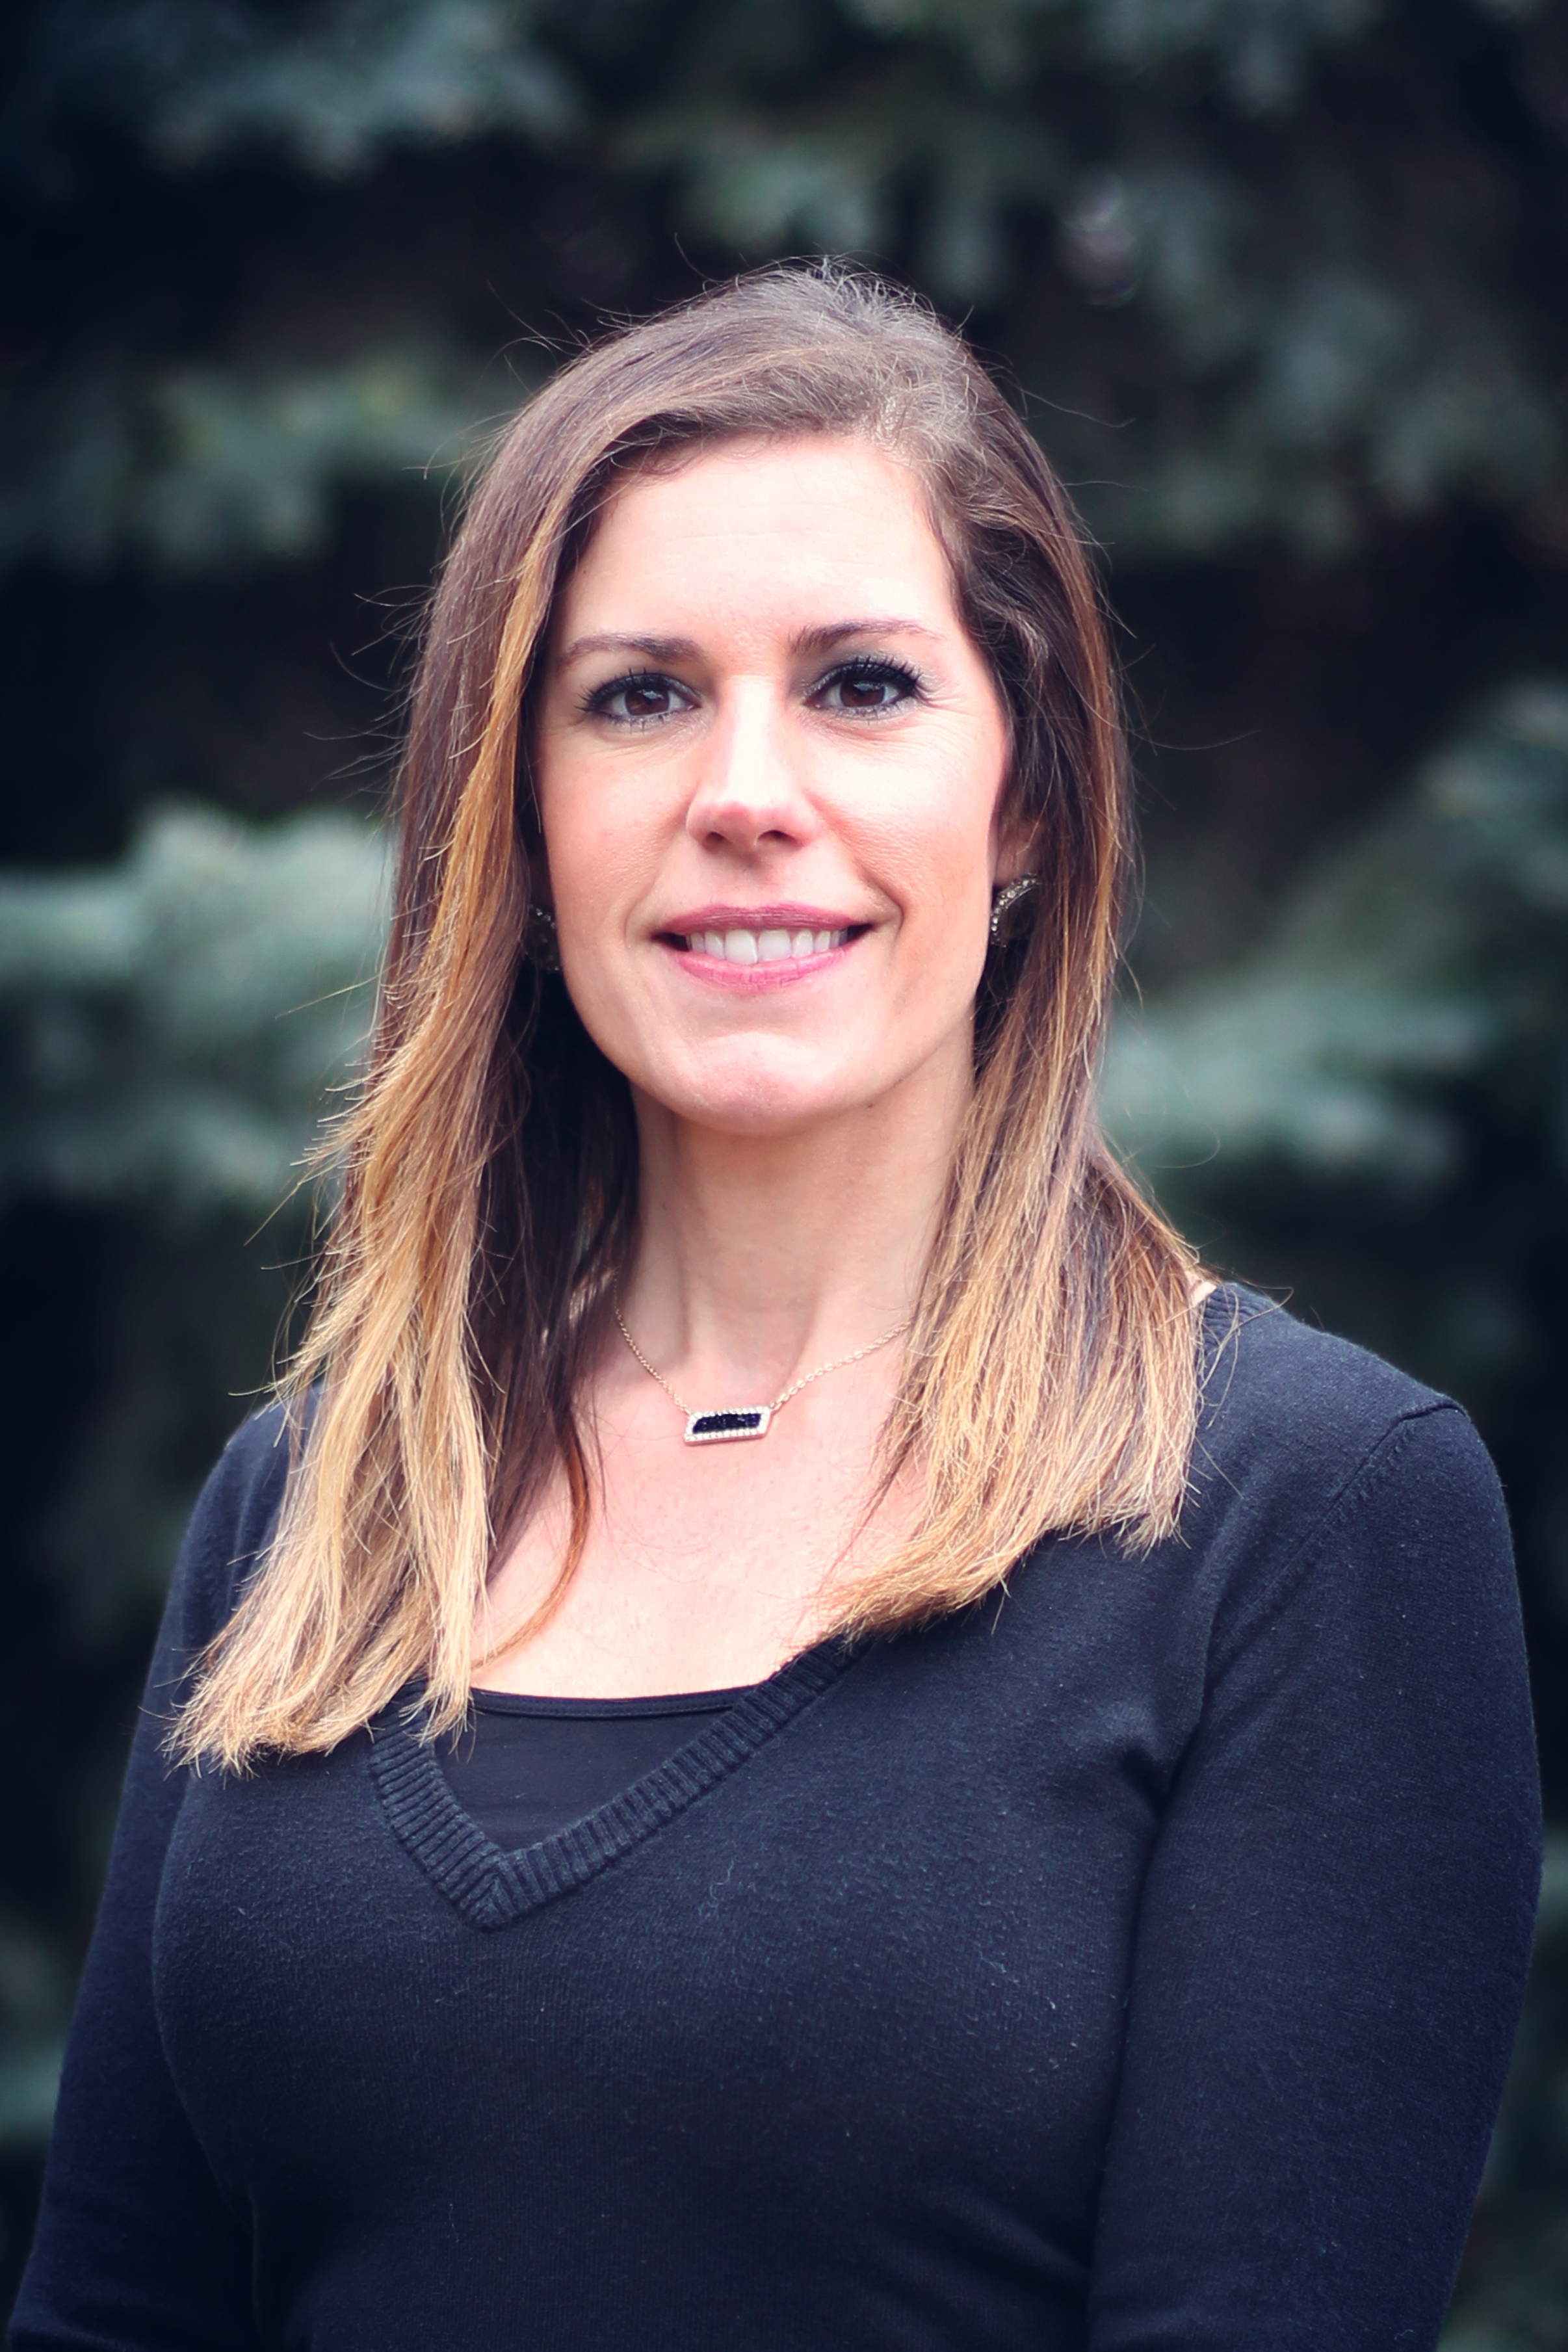 KARIE MERRITT - Director of ClientServices & Experience